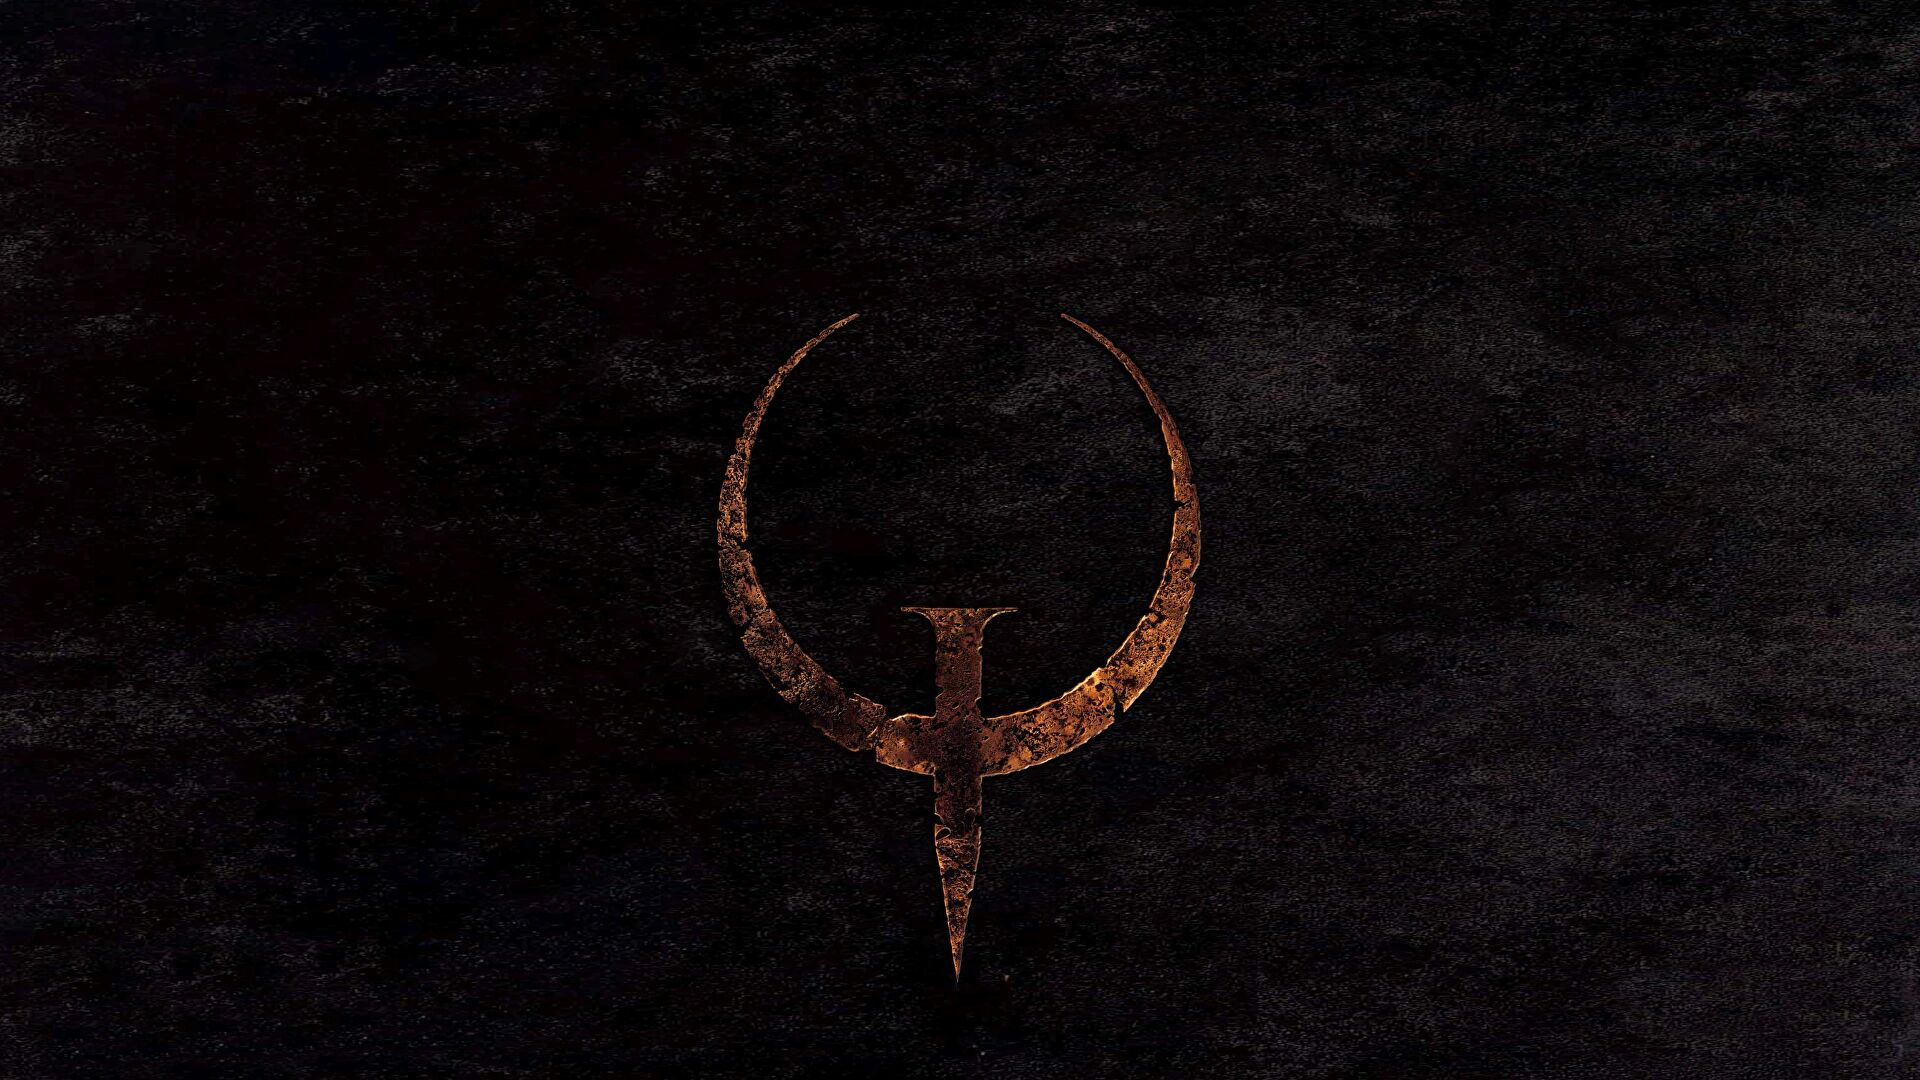 quake logo 8VBb41J I was only a baby when Quake released - here's me playing the modern re-release